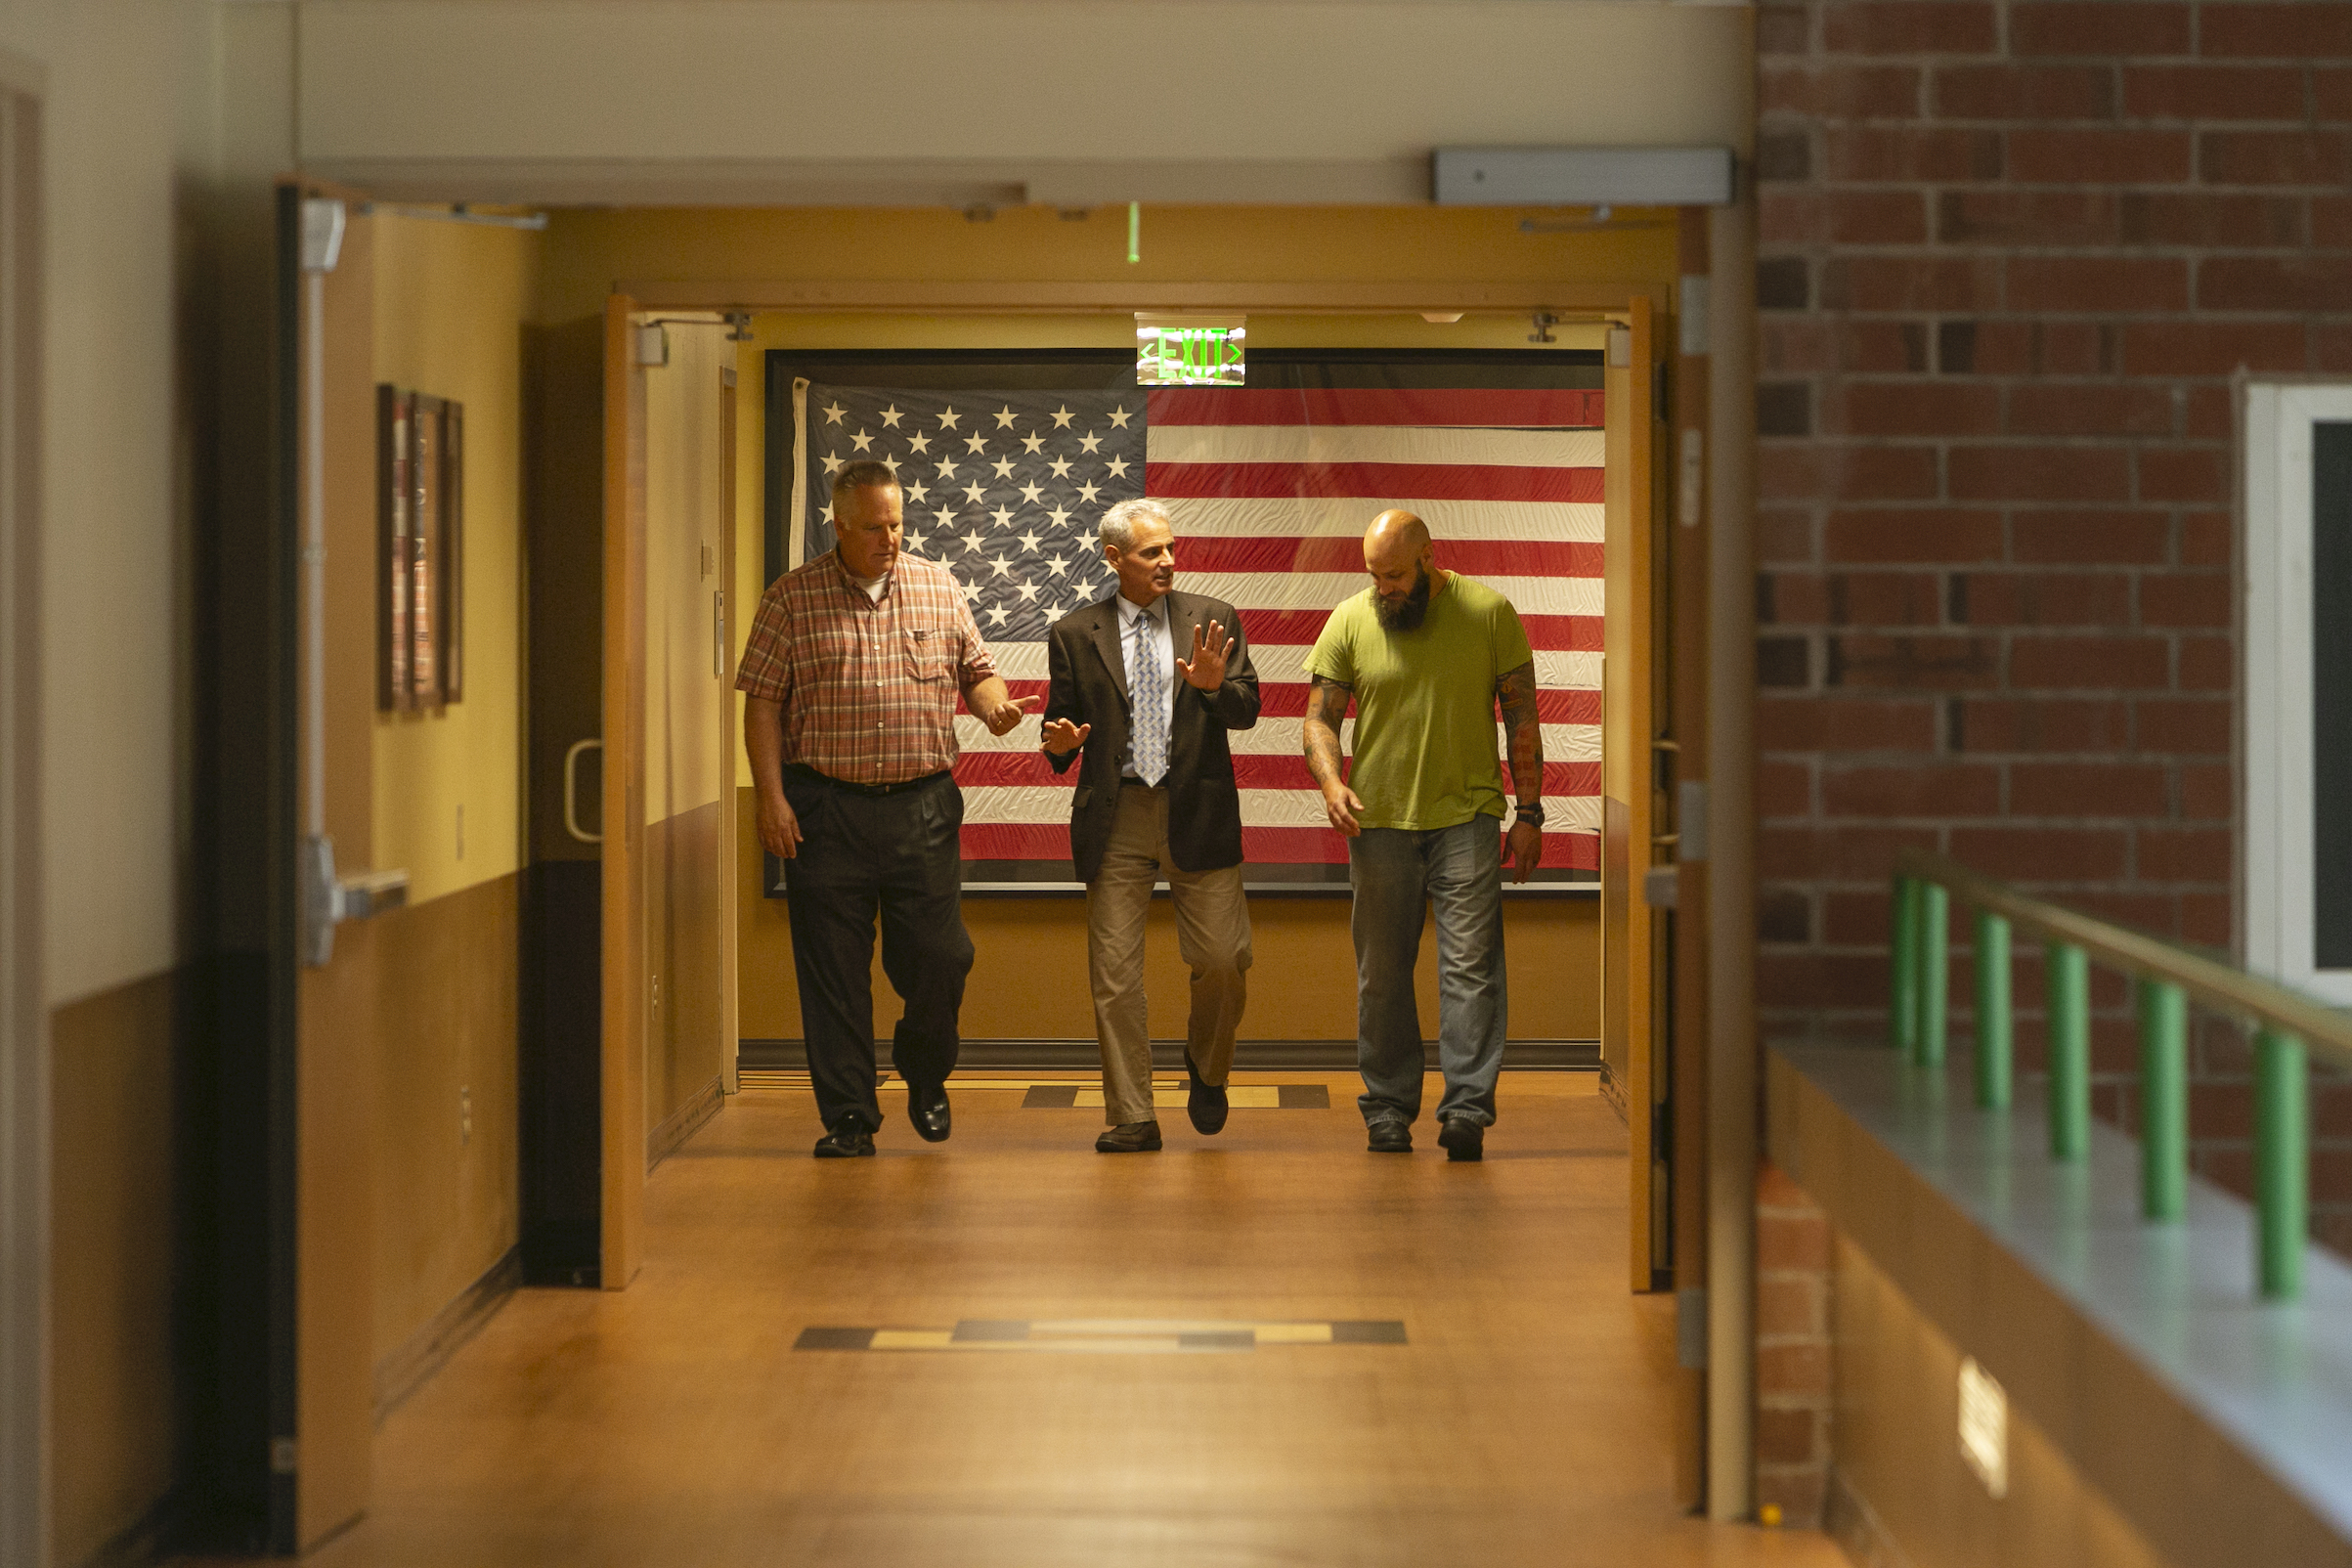 Three people walk down the corridor of a hospital. The flag of the United States is displayed behind them.